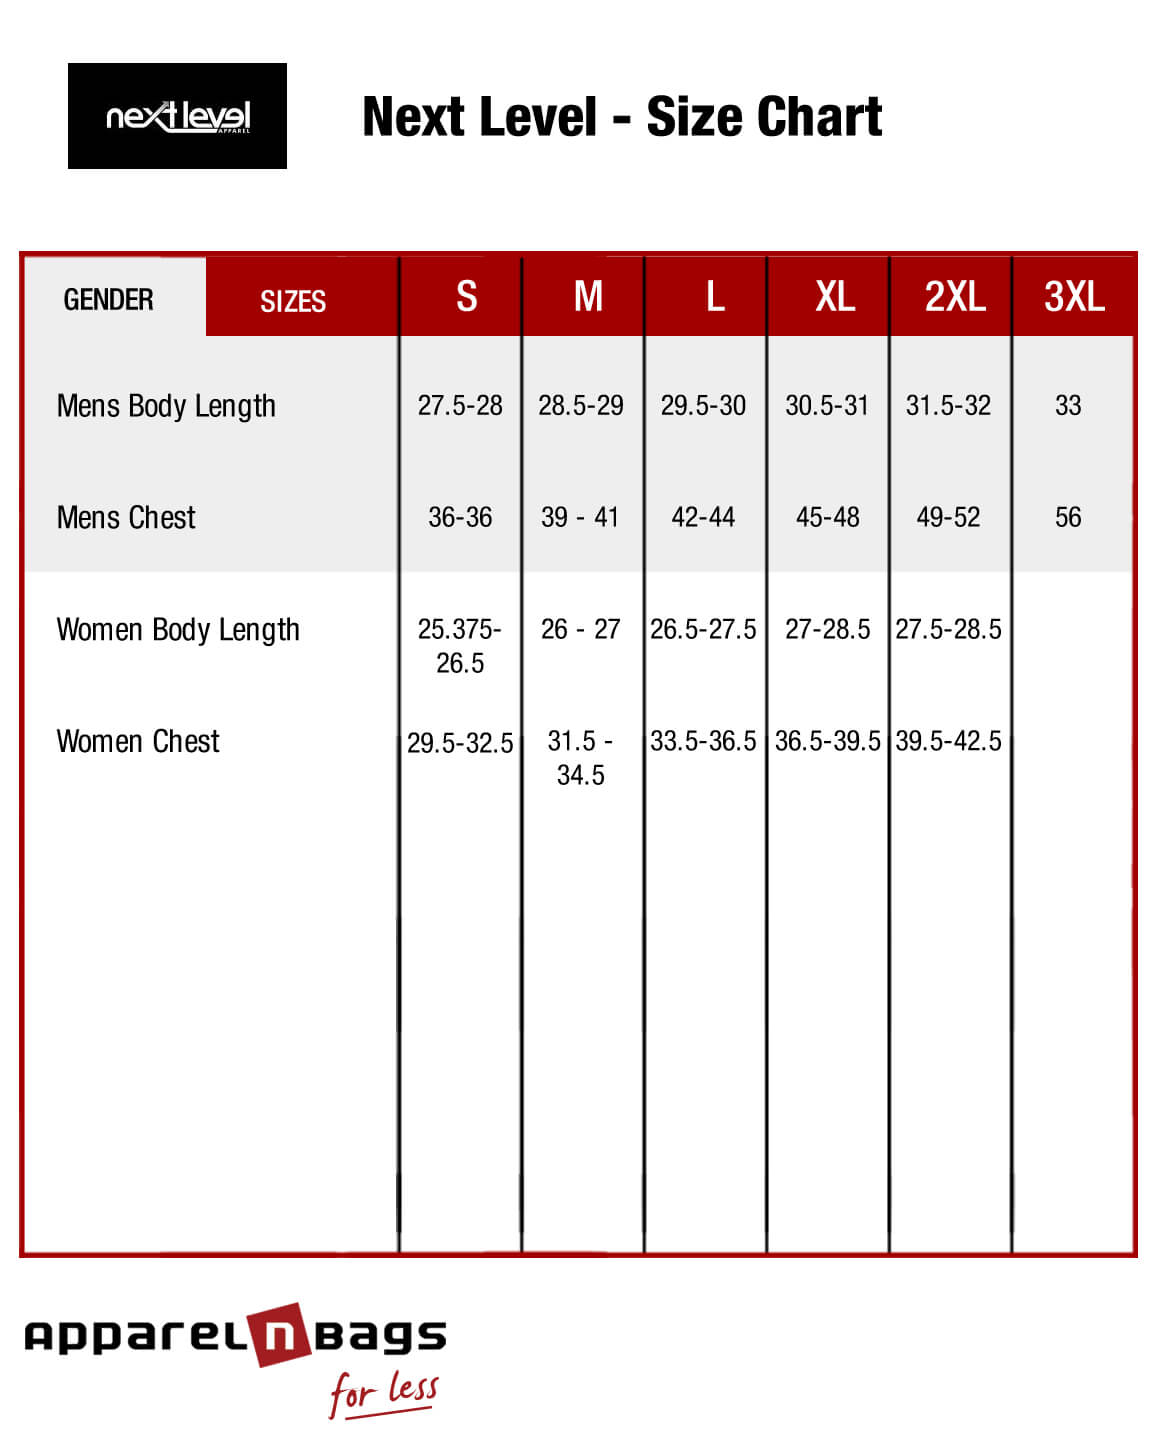 Next level apparel size chart next level fit guide next level size chart nvjuhfo Choice Image